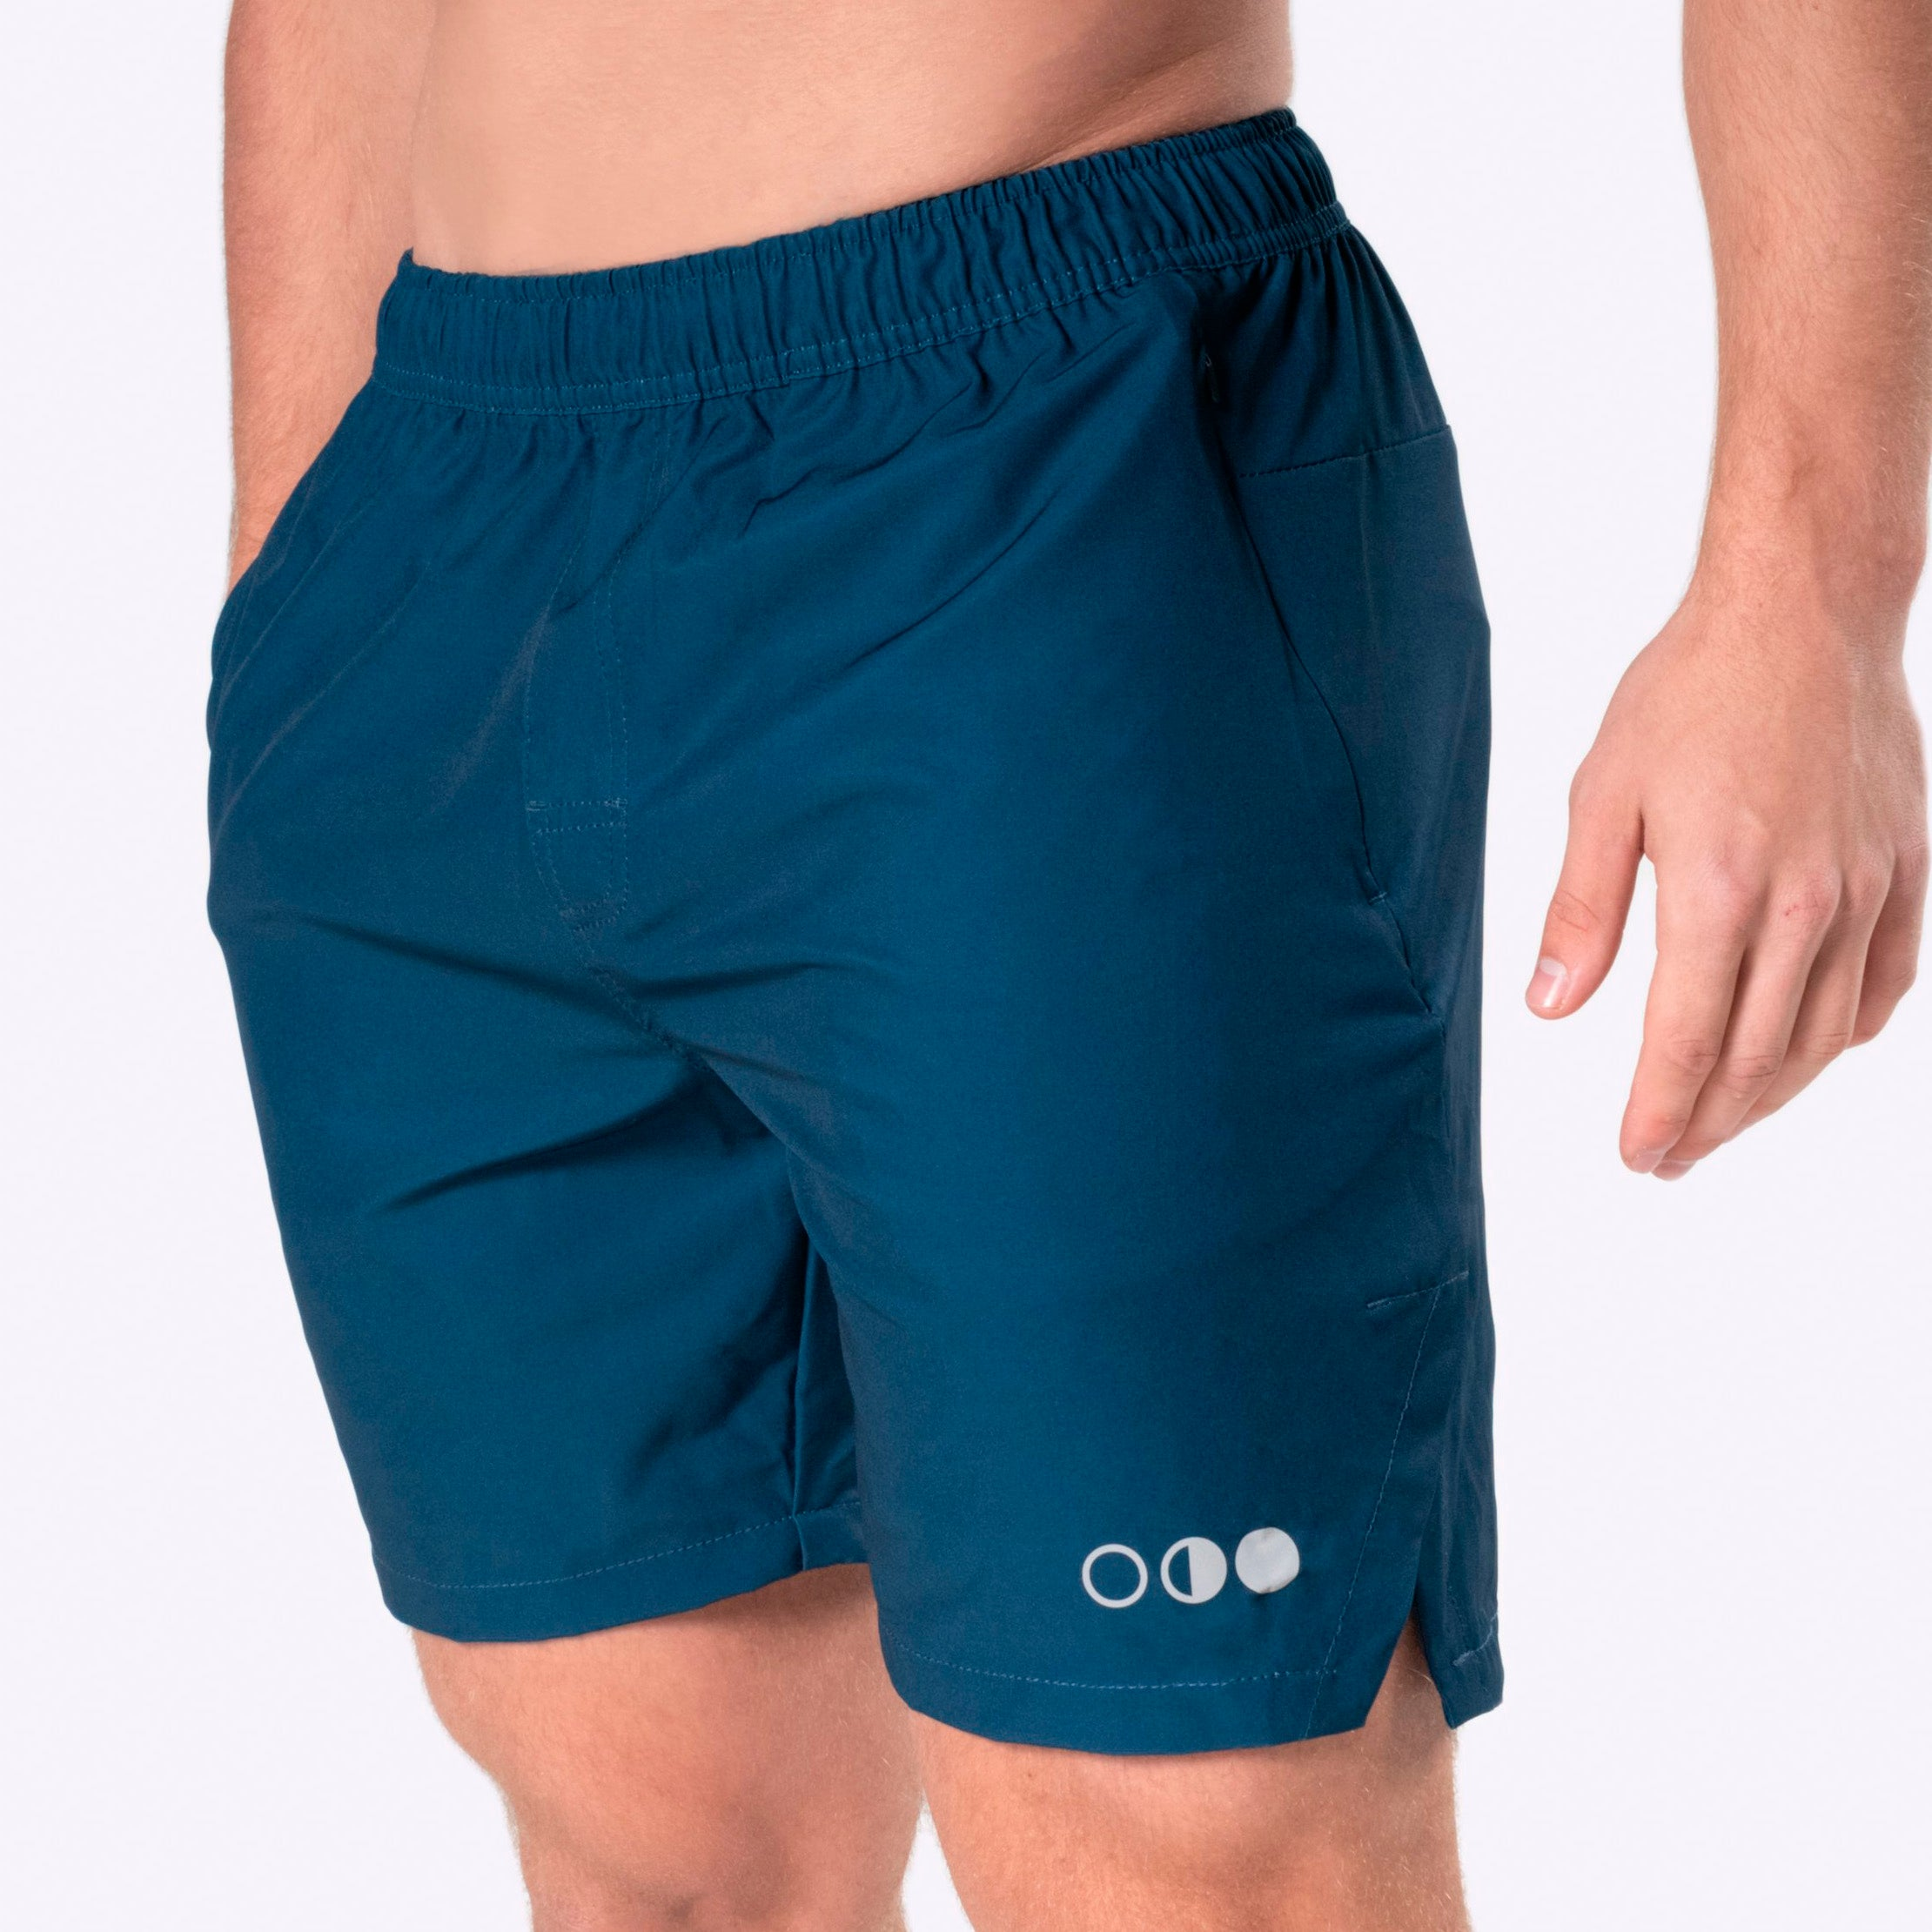 The Brave - Men's Cruiser Shorts 2.0 - AIRFORCE NAVY